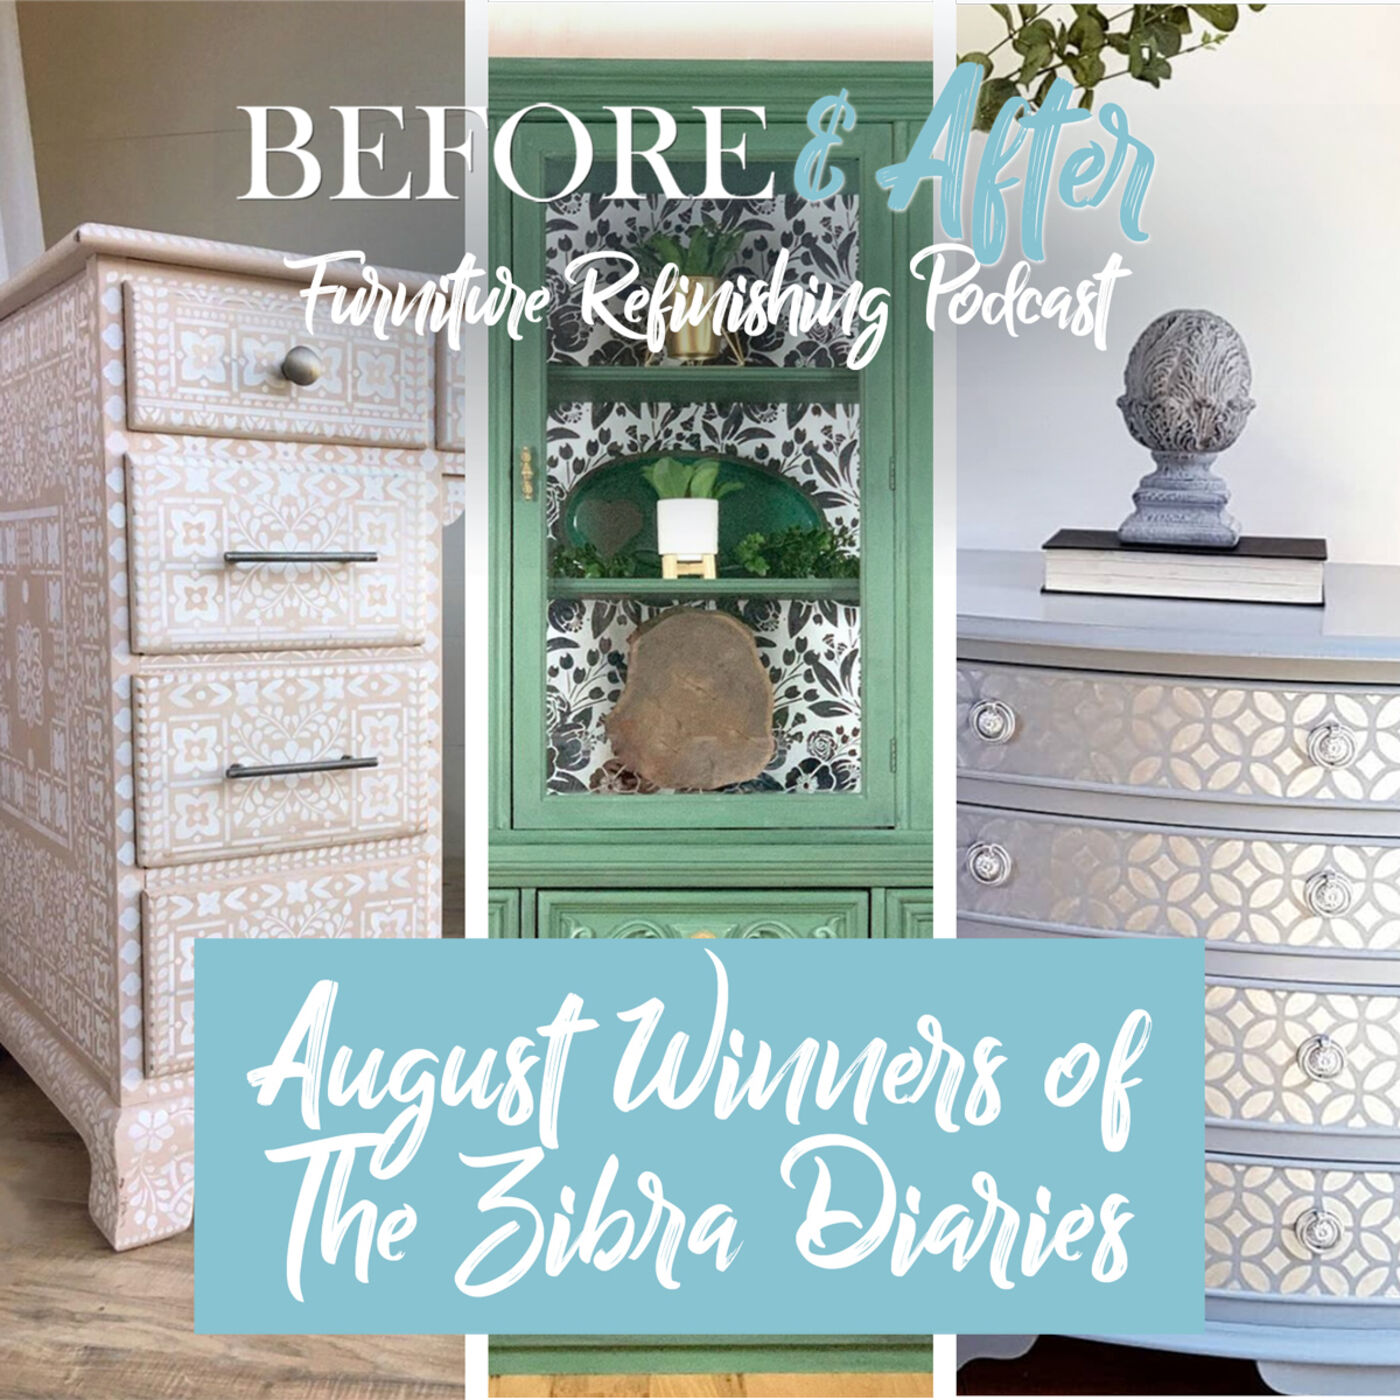 Learn more about stenciling as The Zibra Diaries August winners chat about their winning pieces.